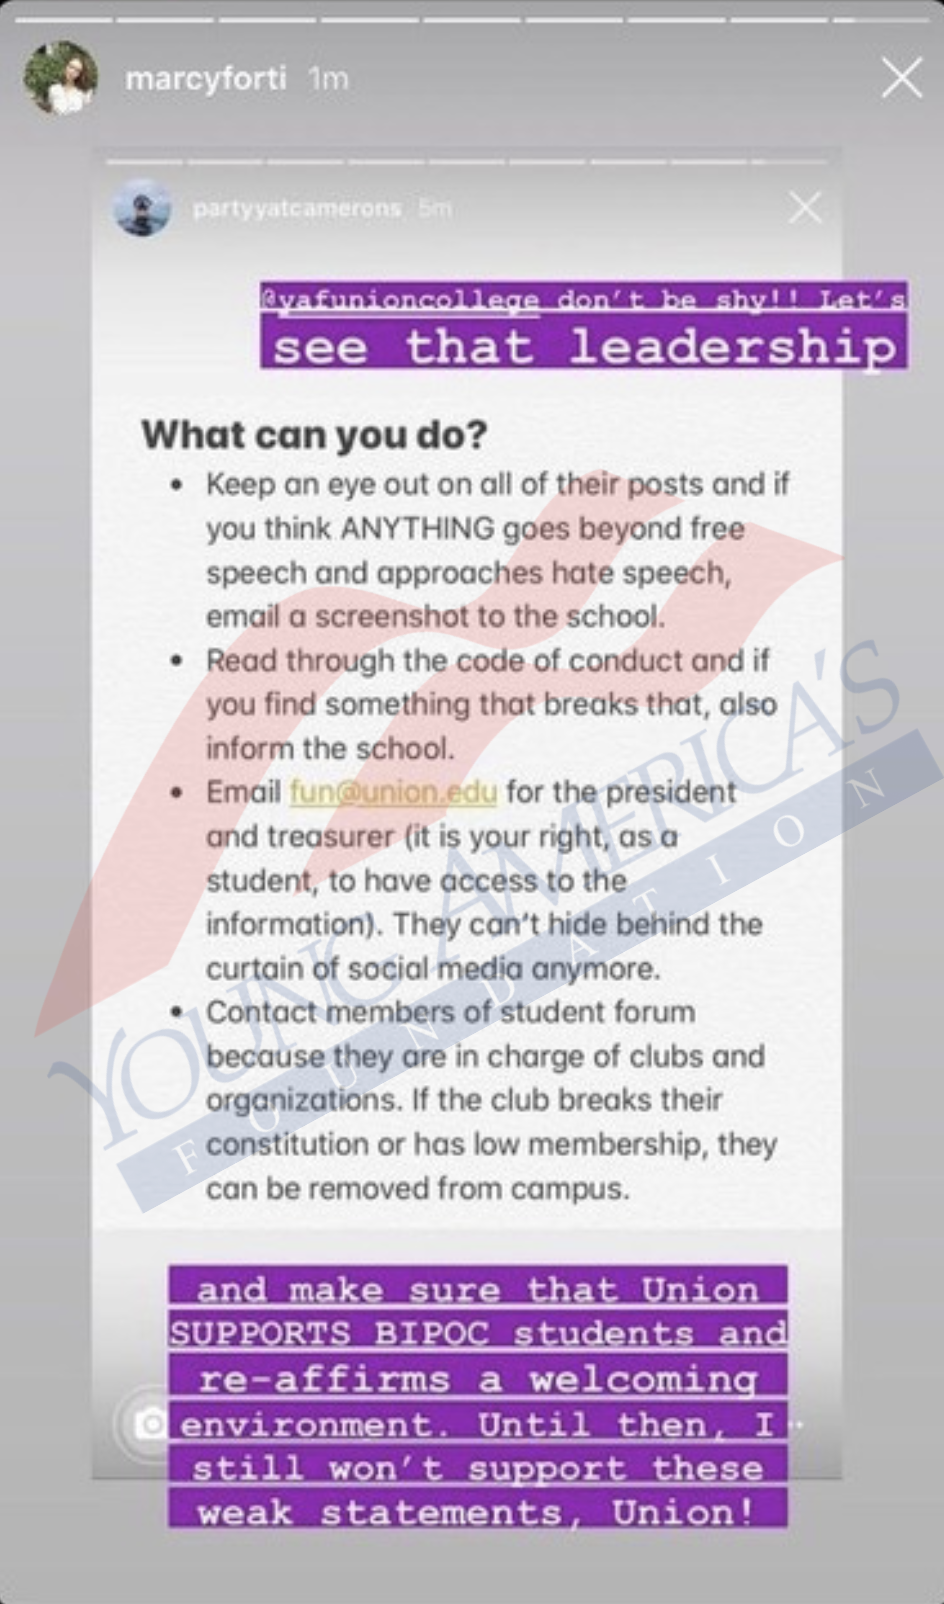 Doxxing College Moves To Release Personal Info Of Yaf Chapter Leaders After Outrage Over Pro Police Instagram Post